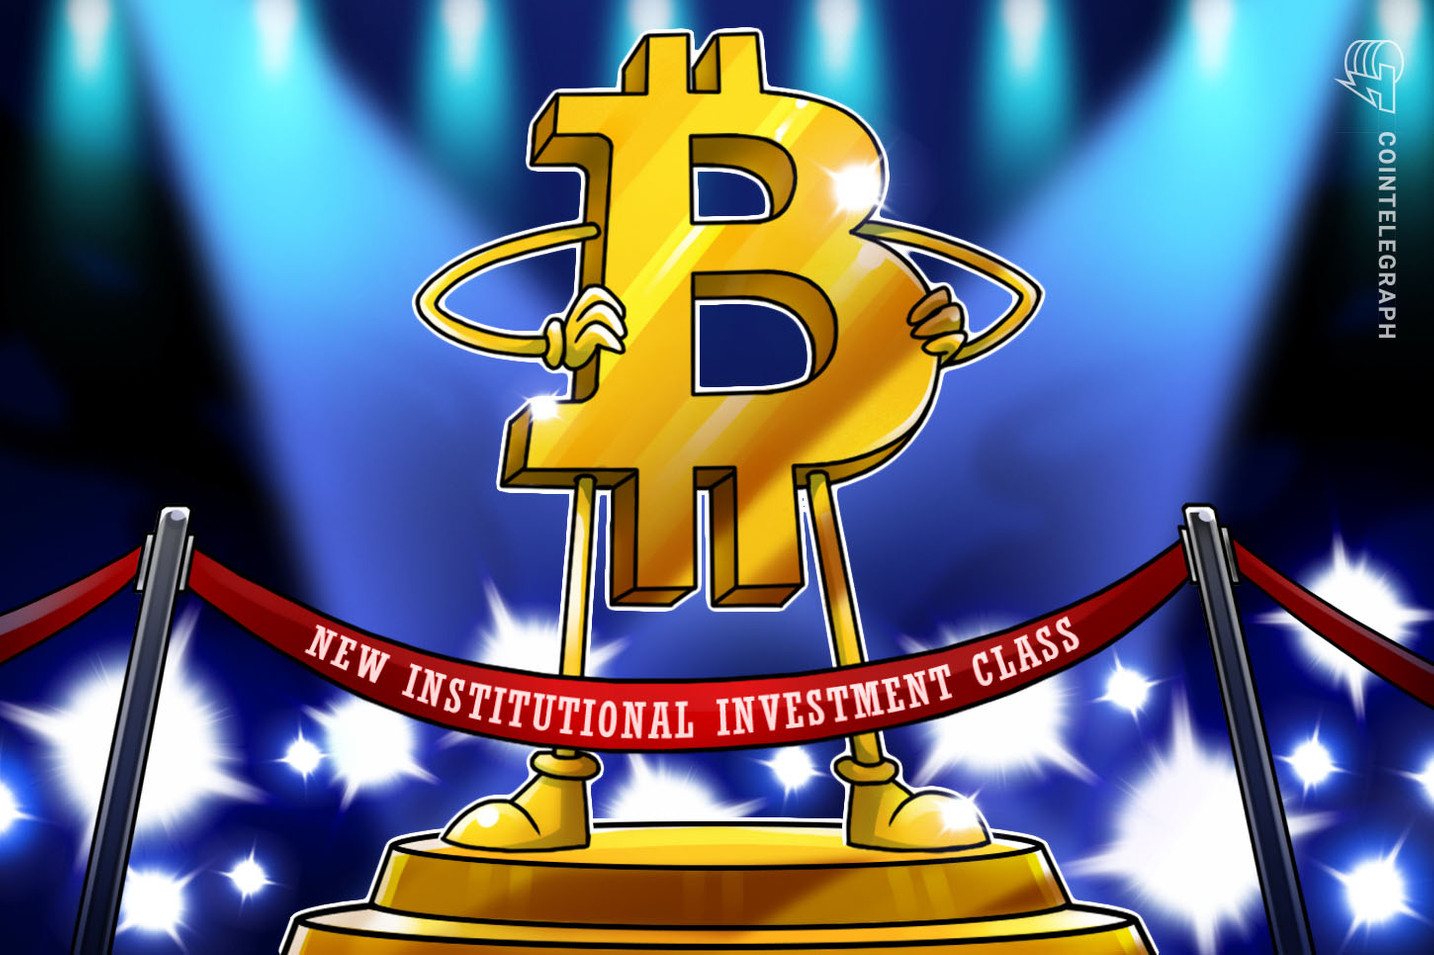 Morgan Stanley Report Shows Strong Institutional Investment for Bitcoin